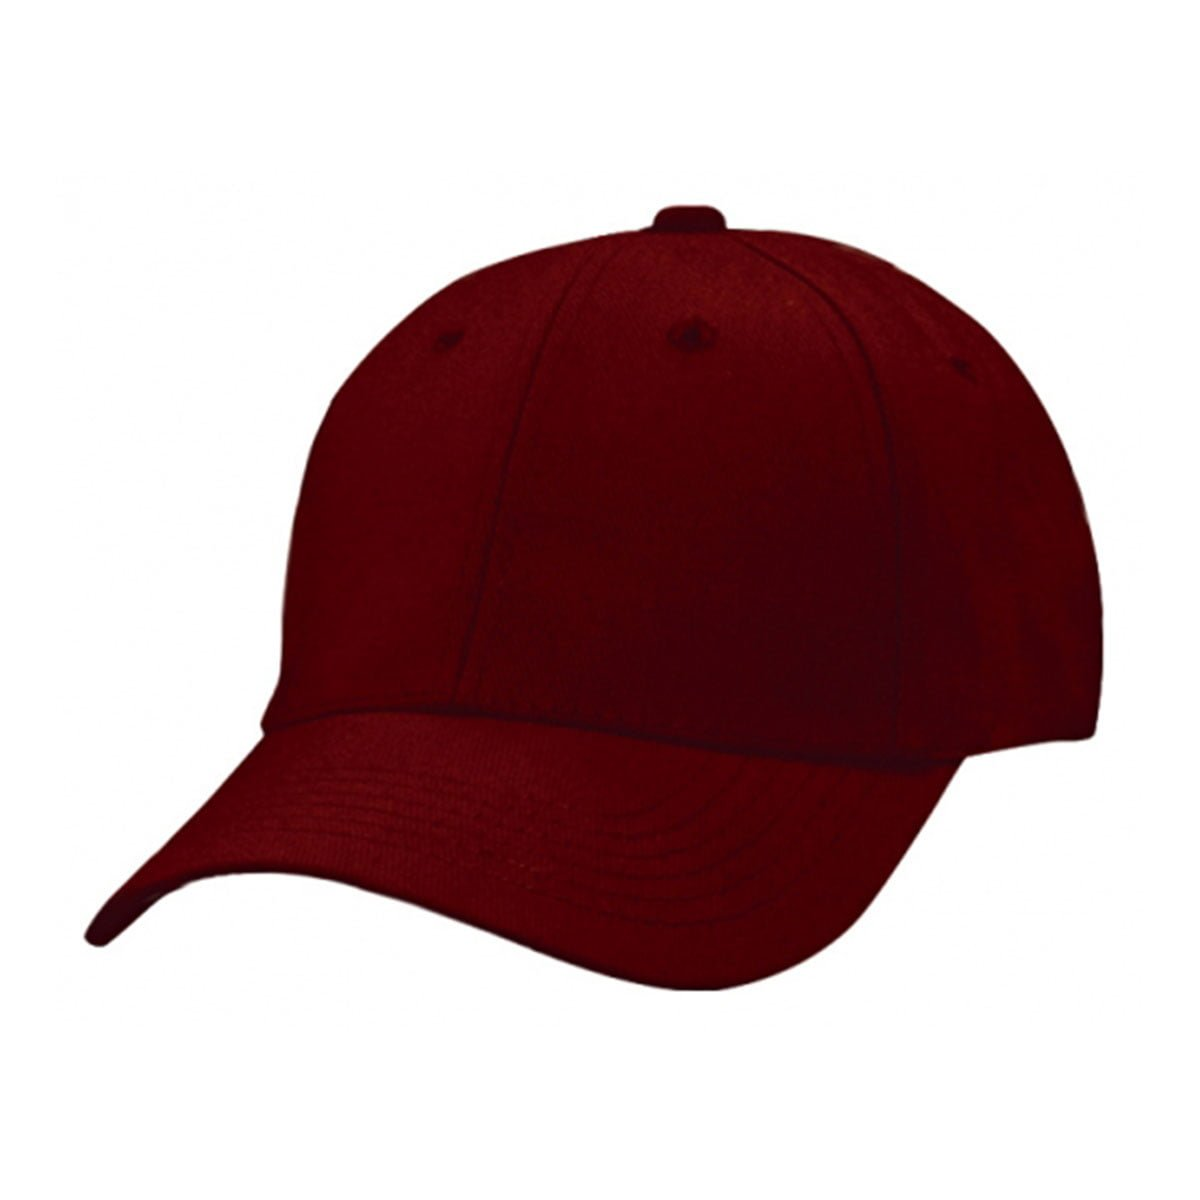 Heavy Brushed Cotton Cap-Maroon